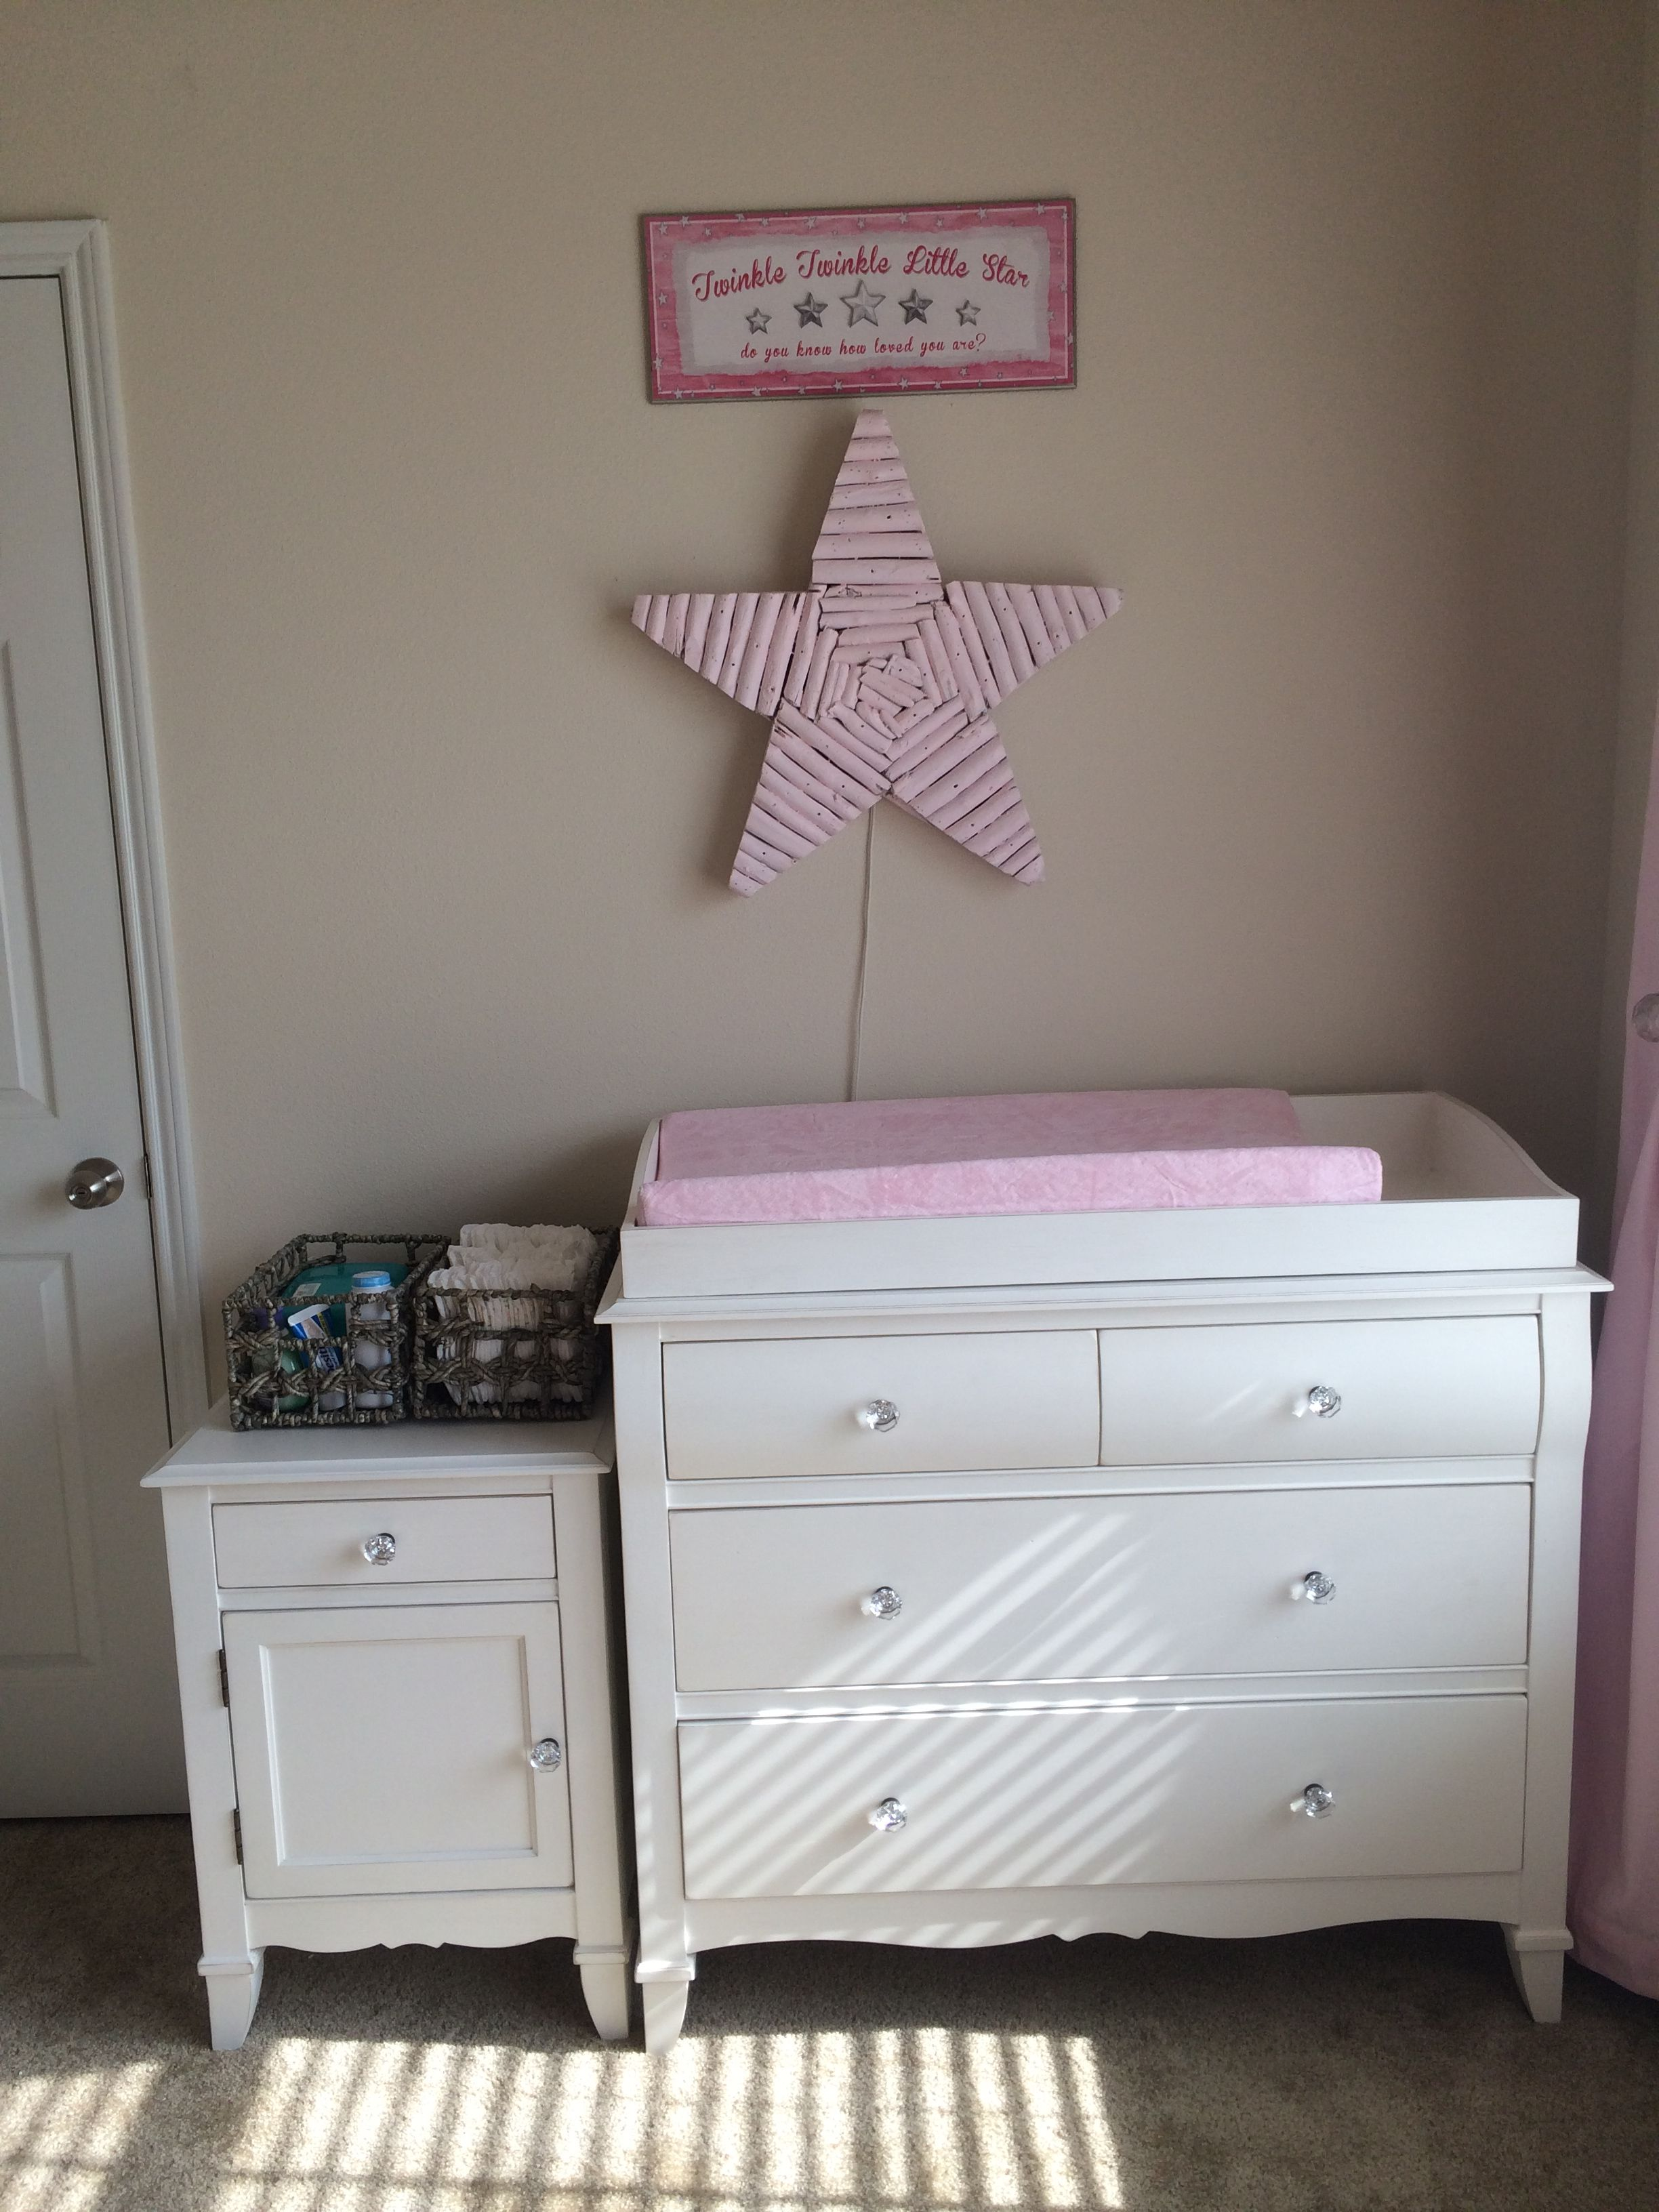 Changing station dresser/topper with night stand placed